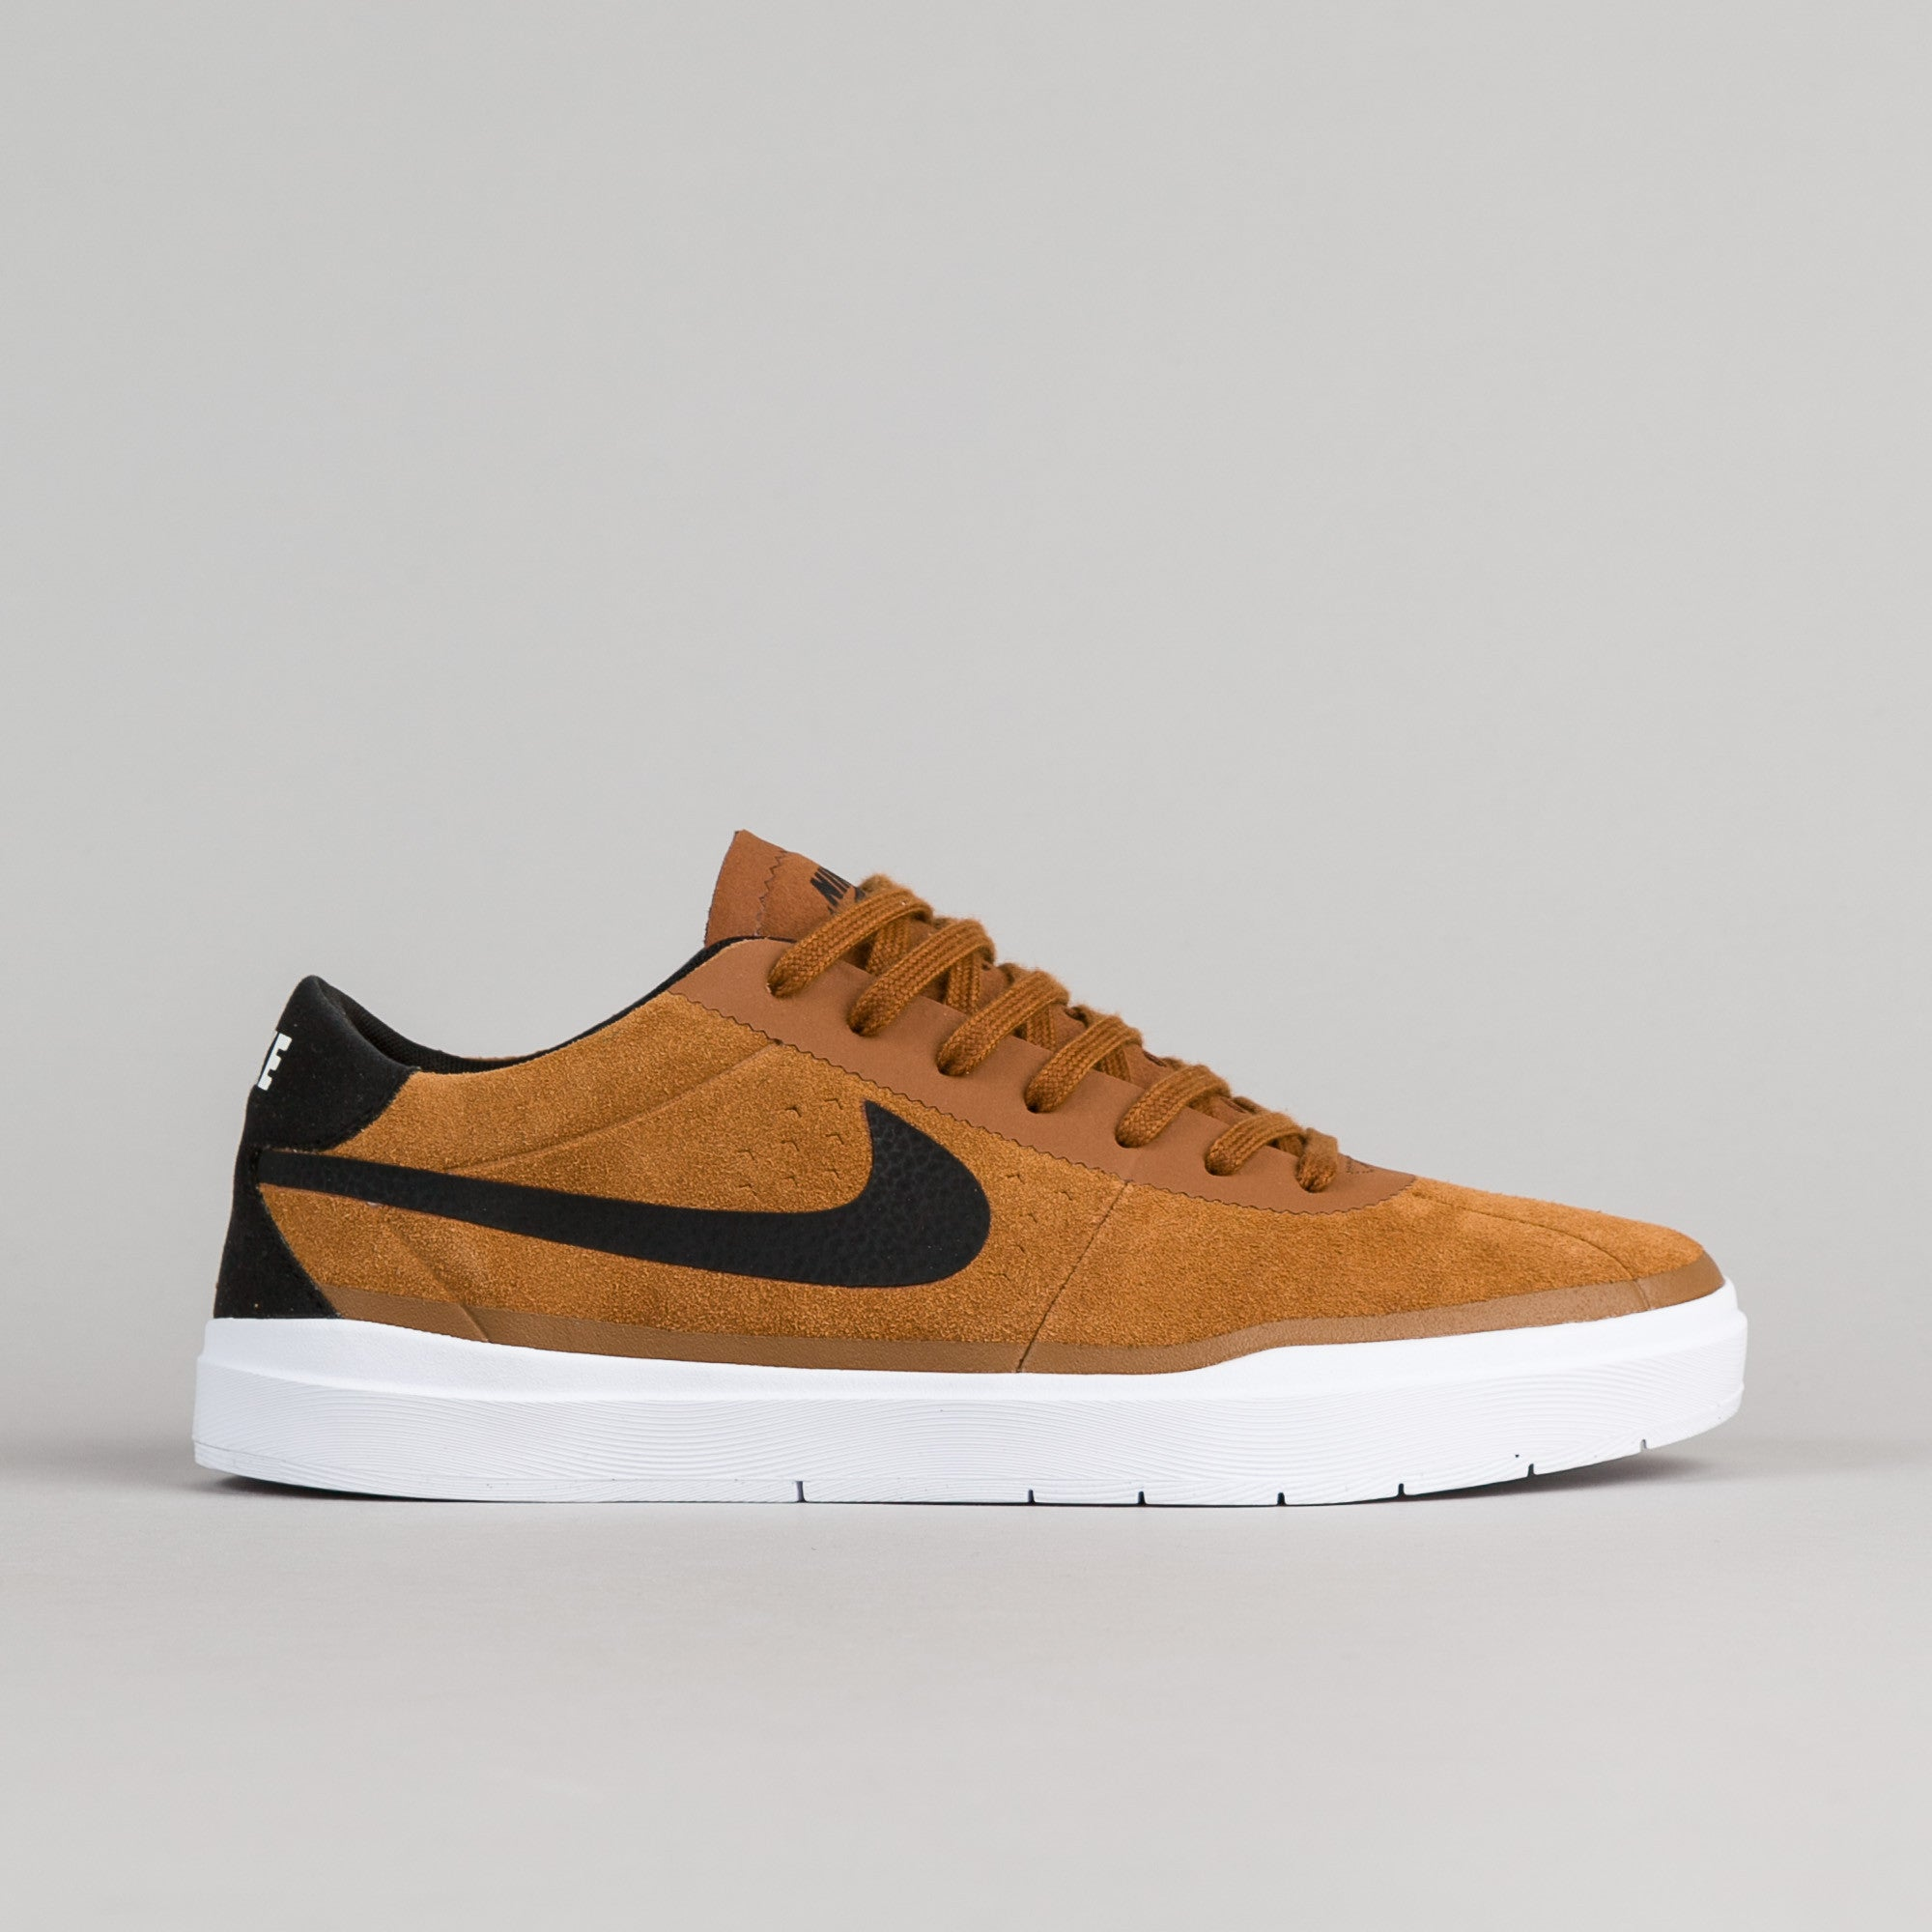 Nike SB Bruin Hyperfeel Shoes - Hazelnut / Black - White